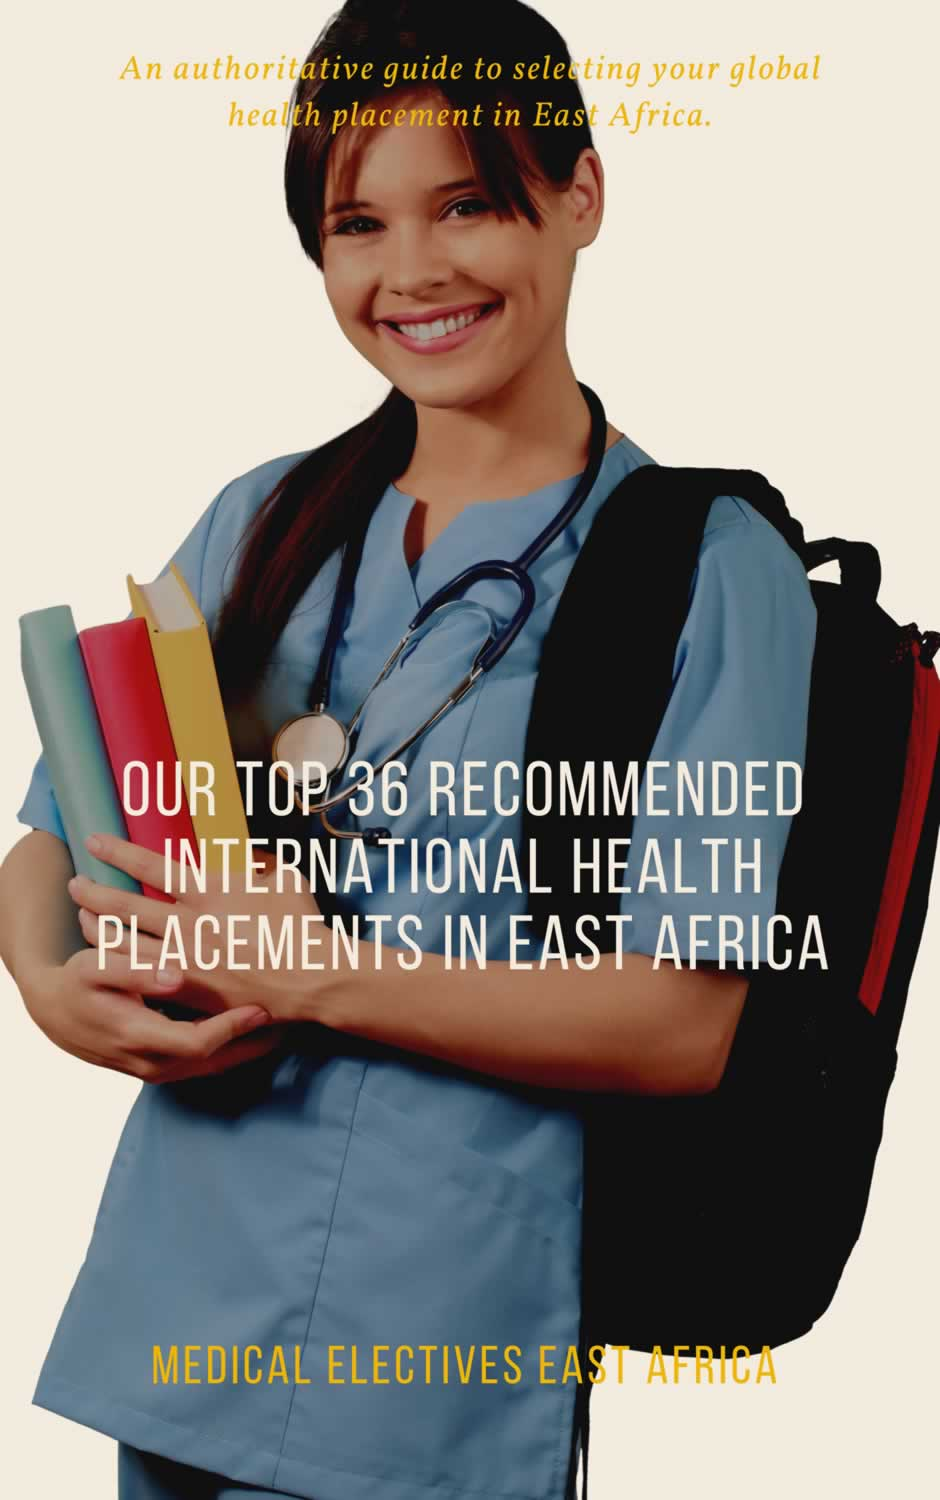 36 Of The Top Global Health Placements We Recommend in East Africa